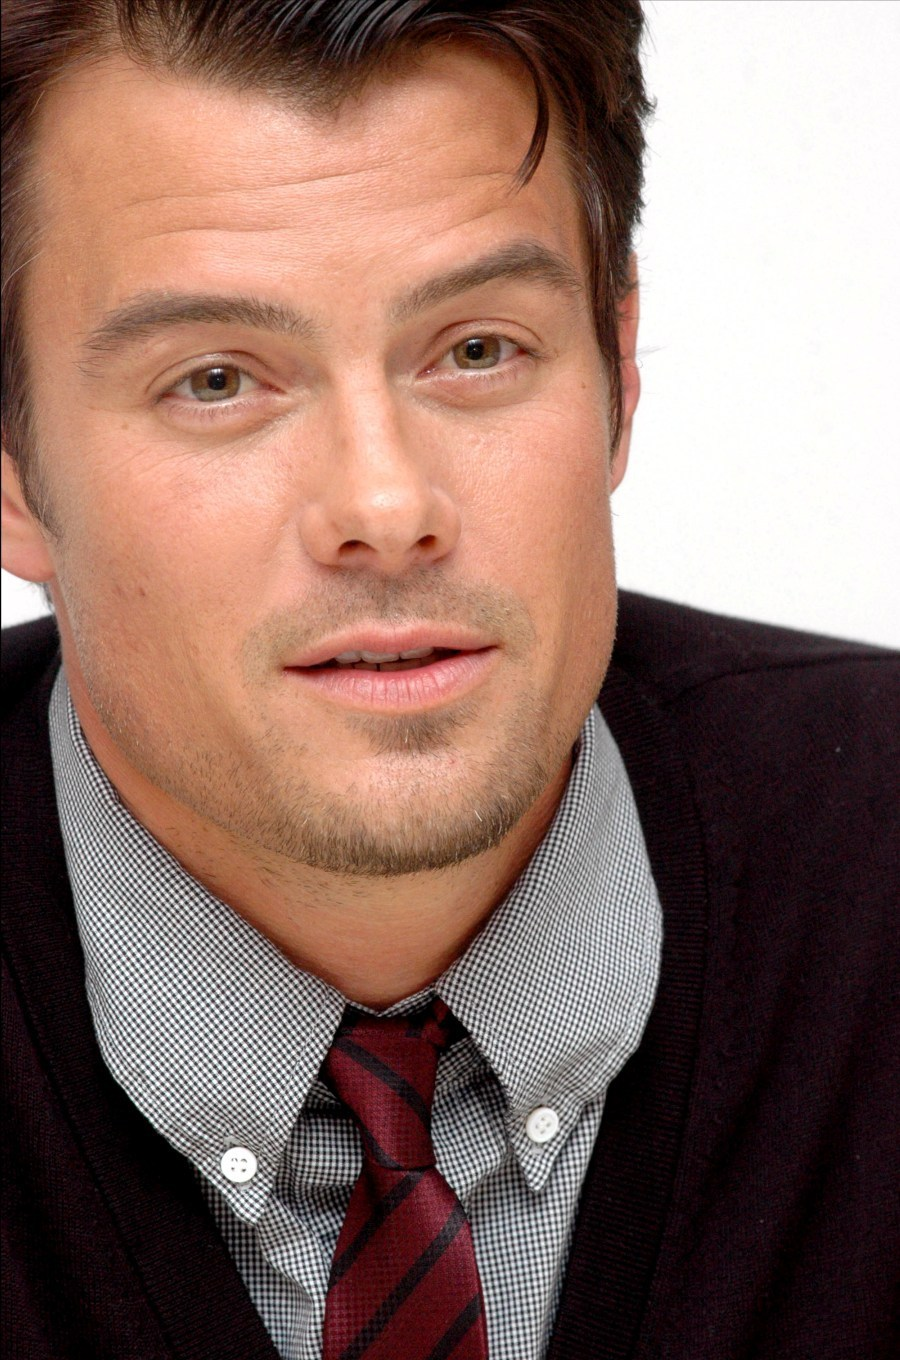 http://images4.fanpop.com/image/photos/19100000/Josh-Duhamel-photo-HQ-josh-duhamel-19189489-900-1360.jpg